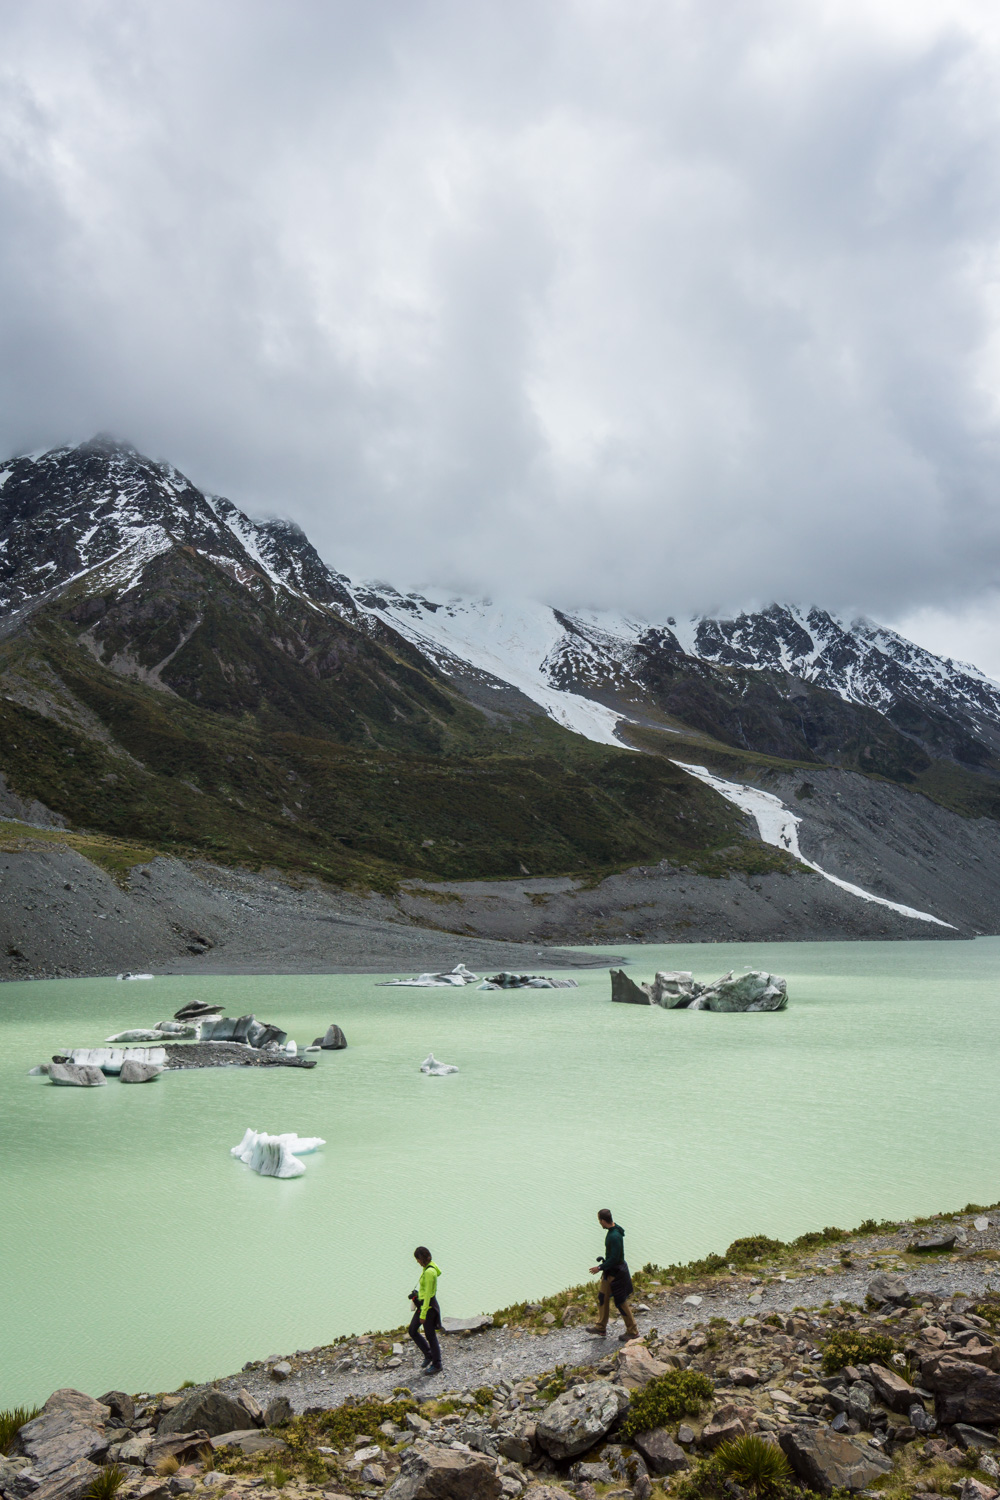 Hiking the hooker valley track in Aoraki / Mt. Cook